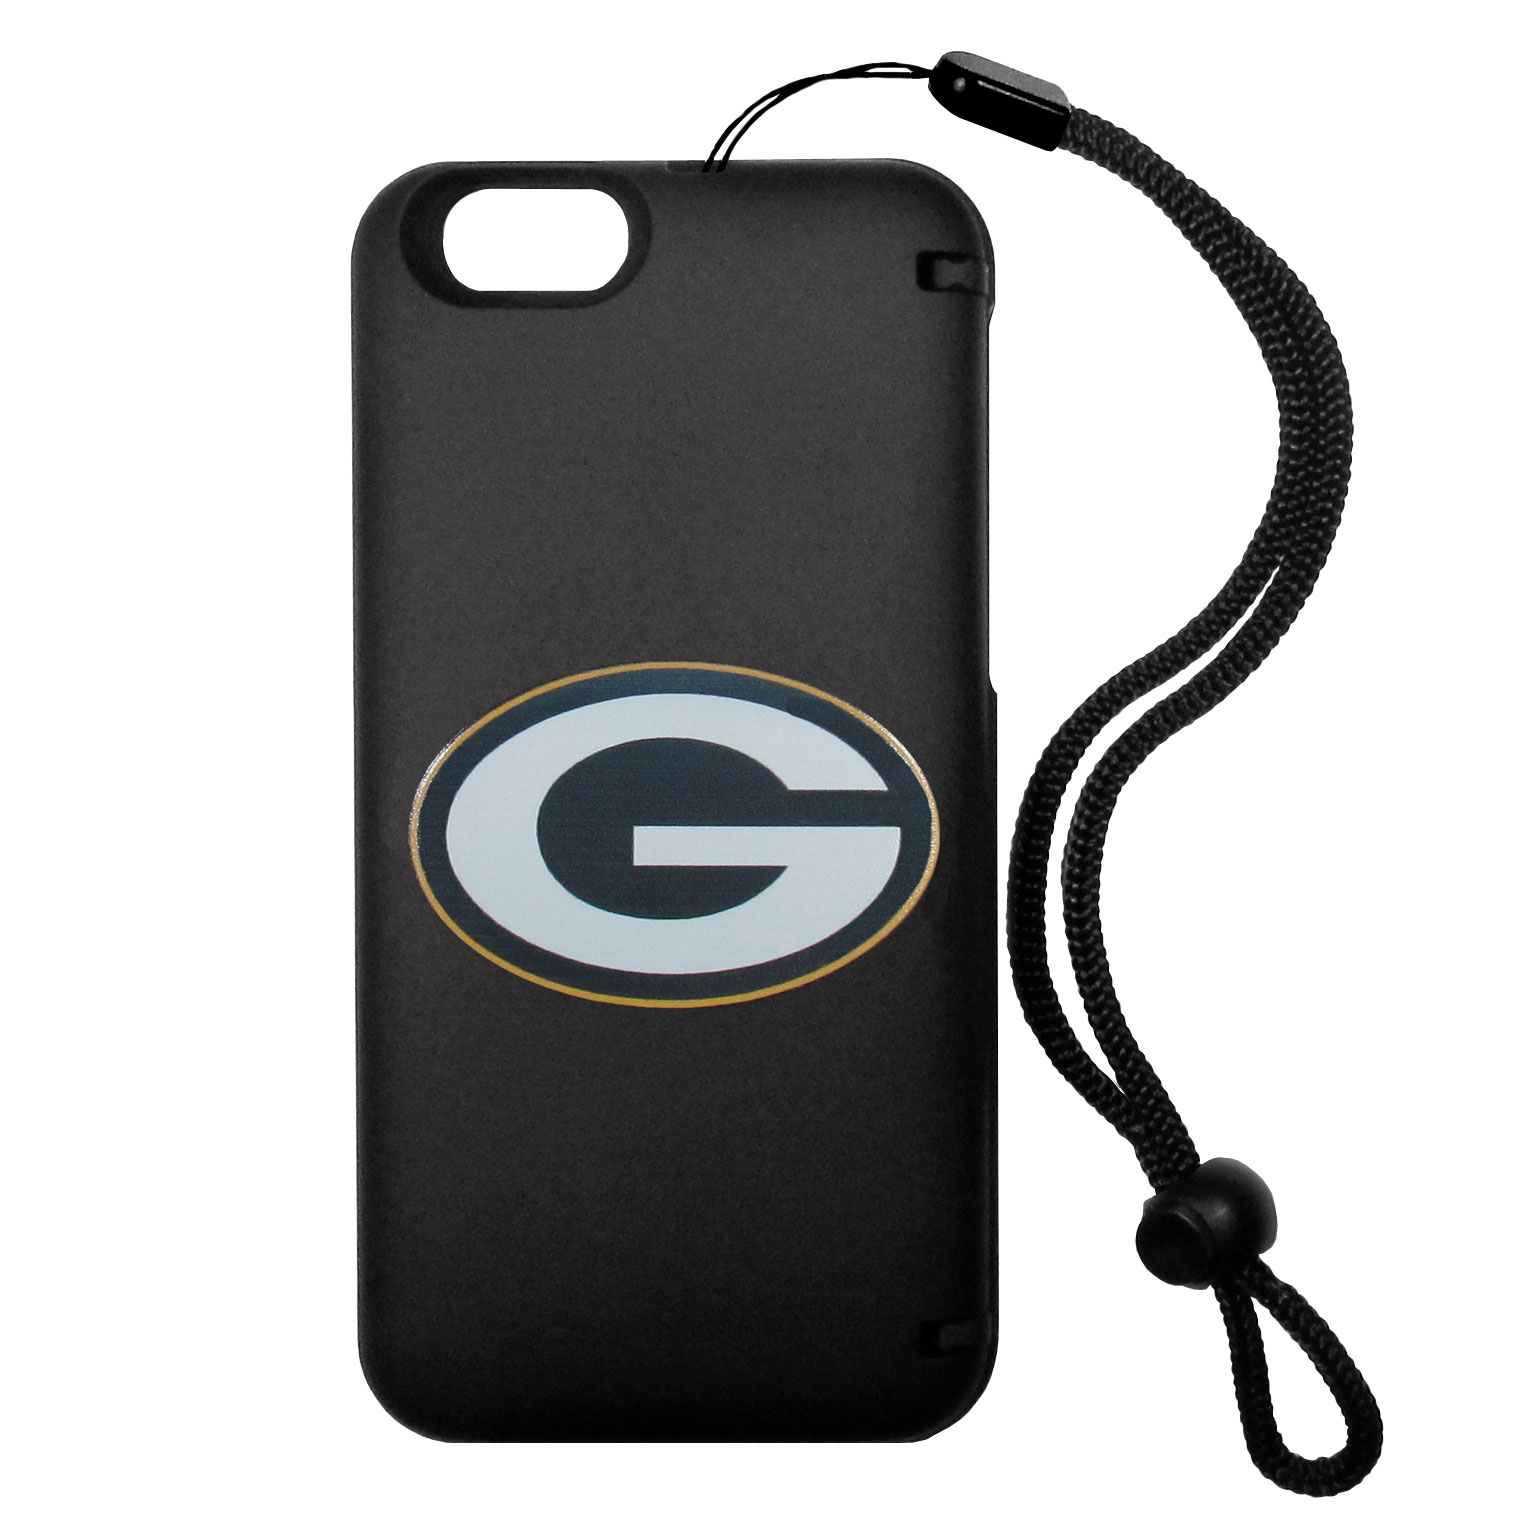 Green Bay Packers iPhone 6 Plus Everything Case - This case really does have everything but the kitchen sink! The hidden compartment lets you keep your cards, money and tickets to the big game safe and secure and has a compact mirror so you can make sure your game face is ready to go. It also comes with a kickstand to make chatting and watching videos a breeze. The wrist strap allows you to travel with ease with your everything case. If that's not enough, it also comes with the Green Bay Packers logo printed in expert detail on the front.